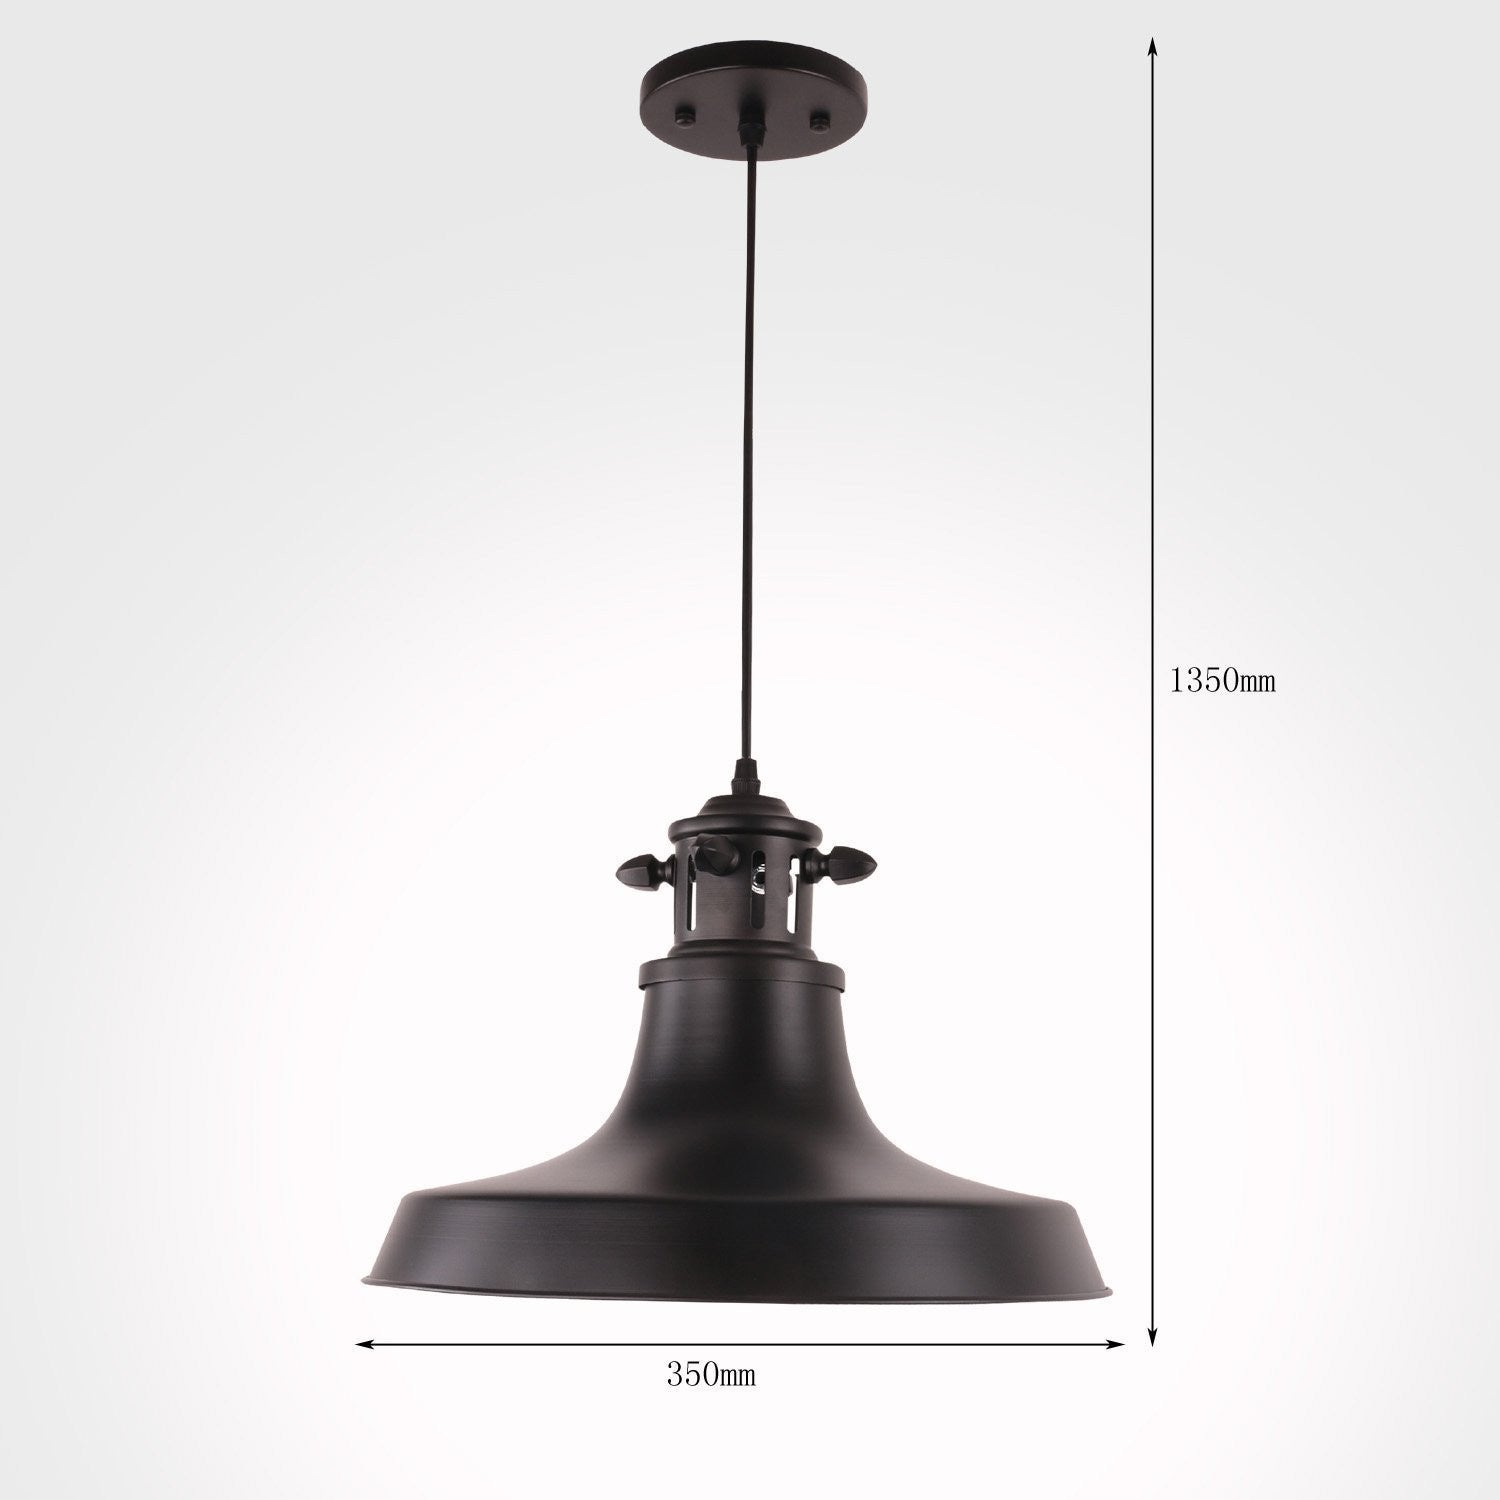 Unitary brand rustic black metal shade barn pendant light with 1 unitary brand rustic black metal shade barn pendant light with 1 e26 bulb socket 40w painted finish arubaitofo Image collections